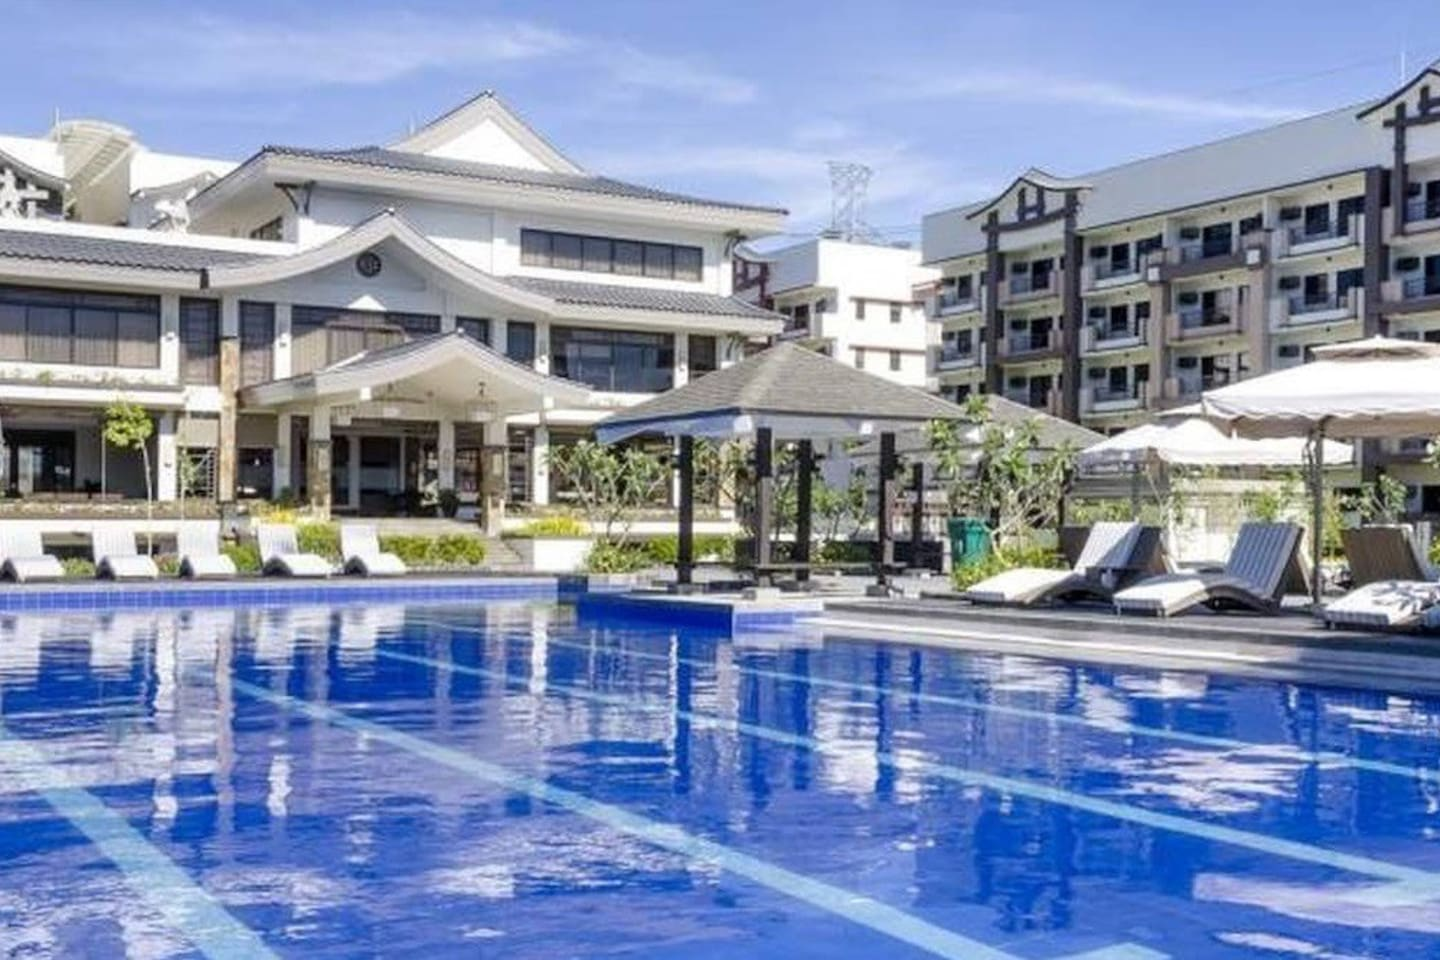 Swimming pool rules: Swimming pool is not FREE, guest must pay 112 per person. It is closed every Monday for cleaning and only OWNERS are allowed to use it every Saturday and Sunday.